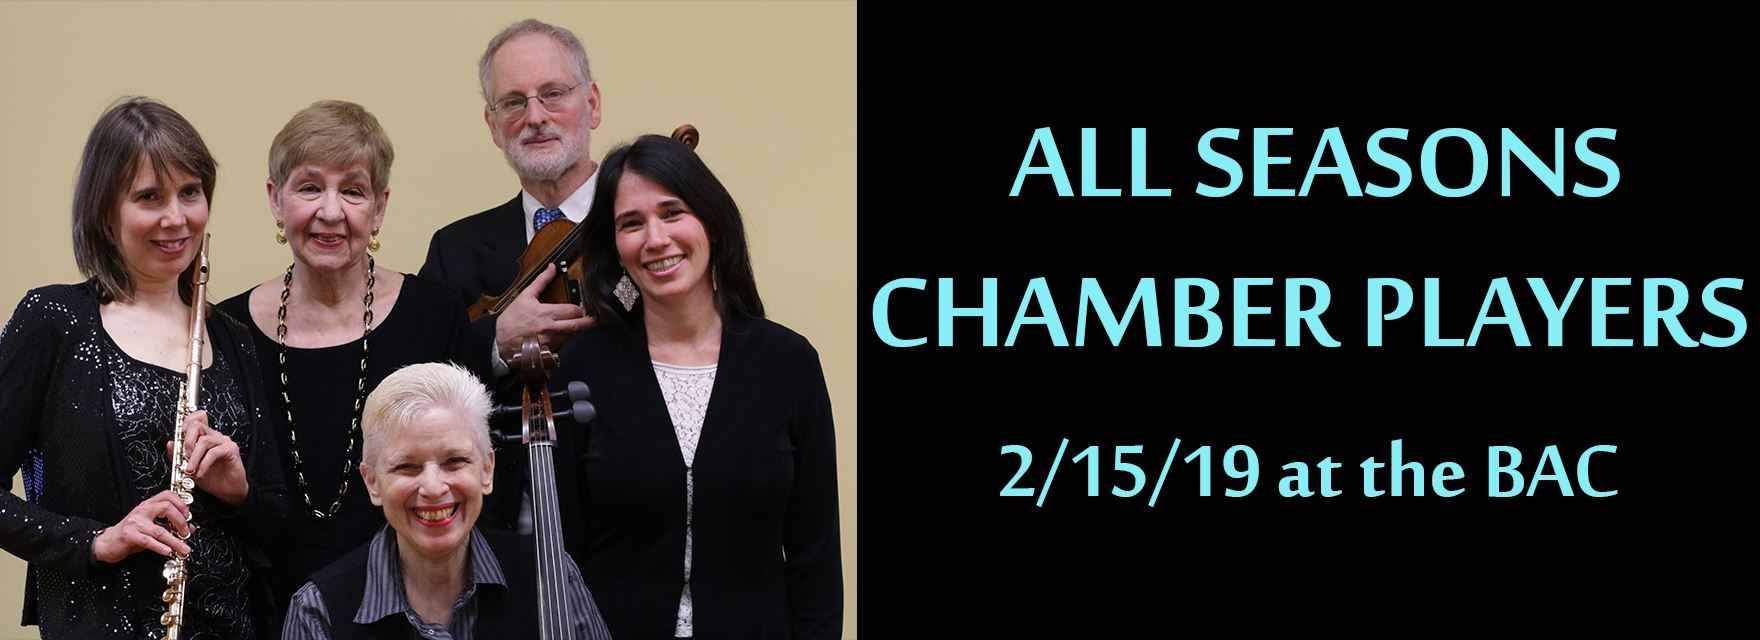 Concert: All Seasons Chamber Players 2/15/2019